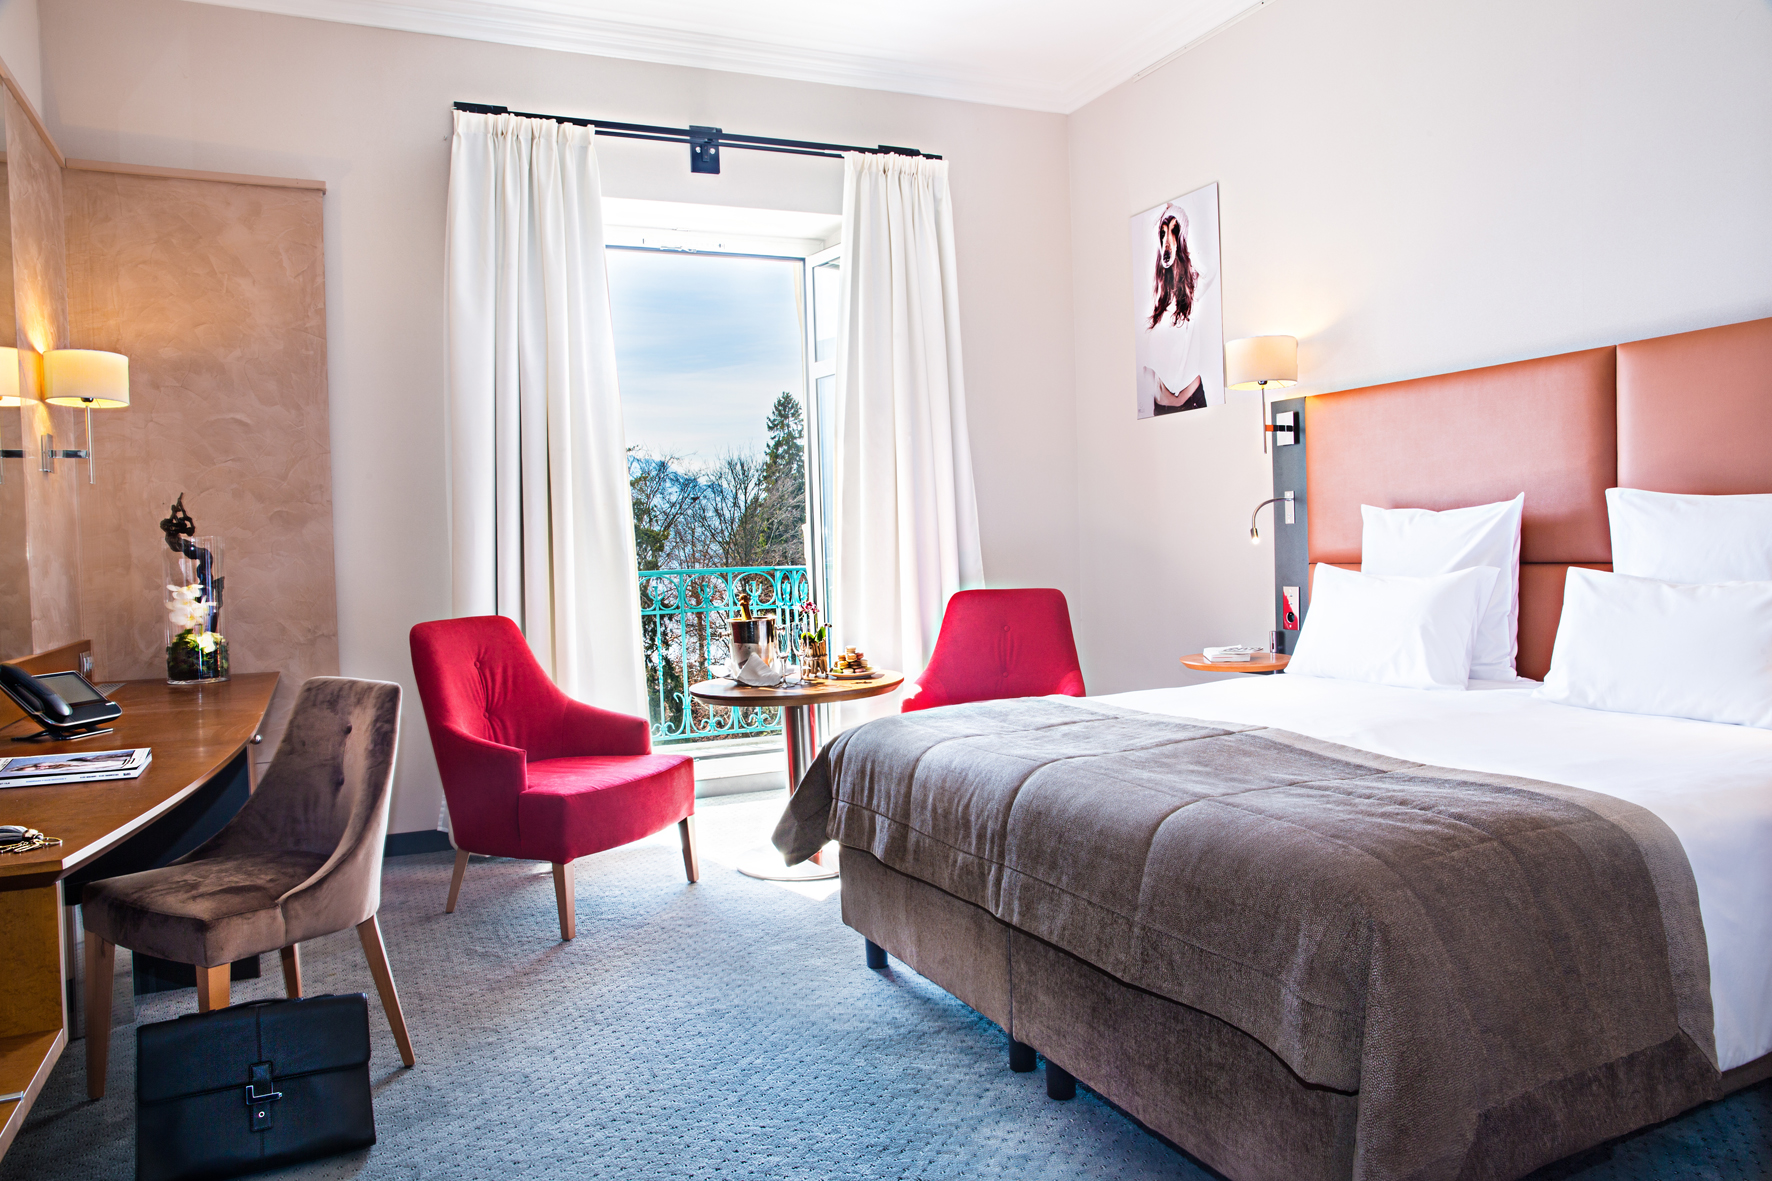 Imperial Palace, Annecy (B&B hotel) - Typical Room